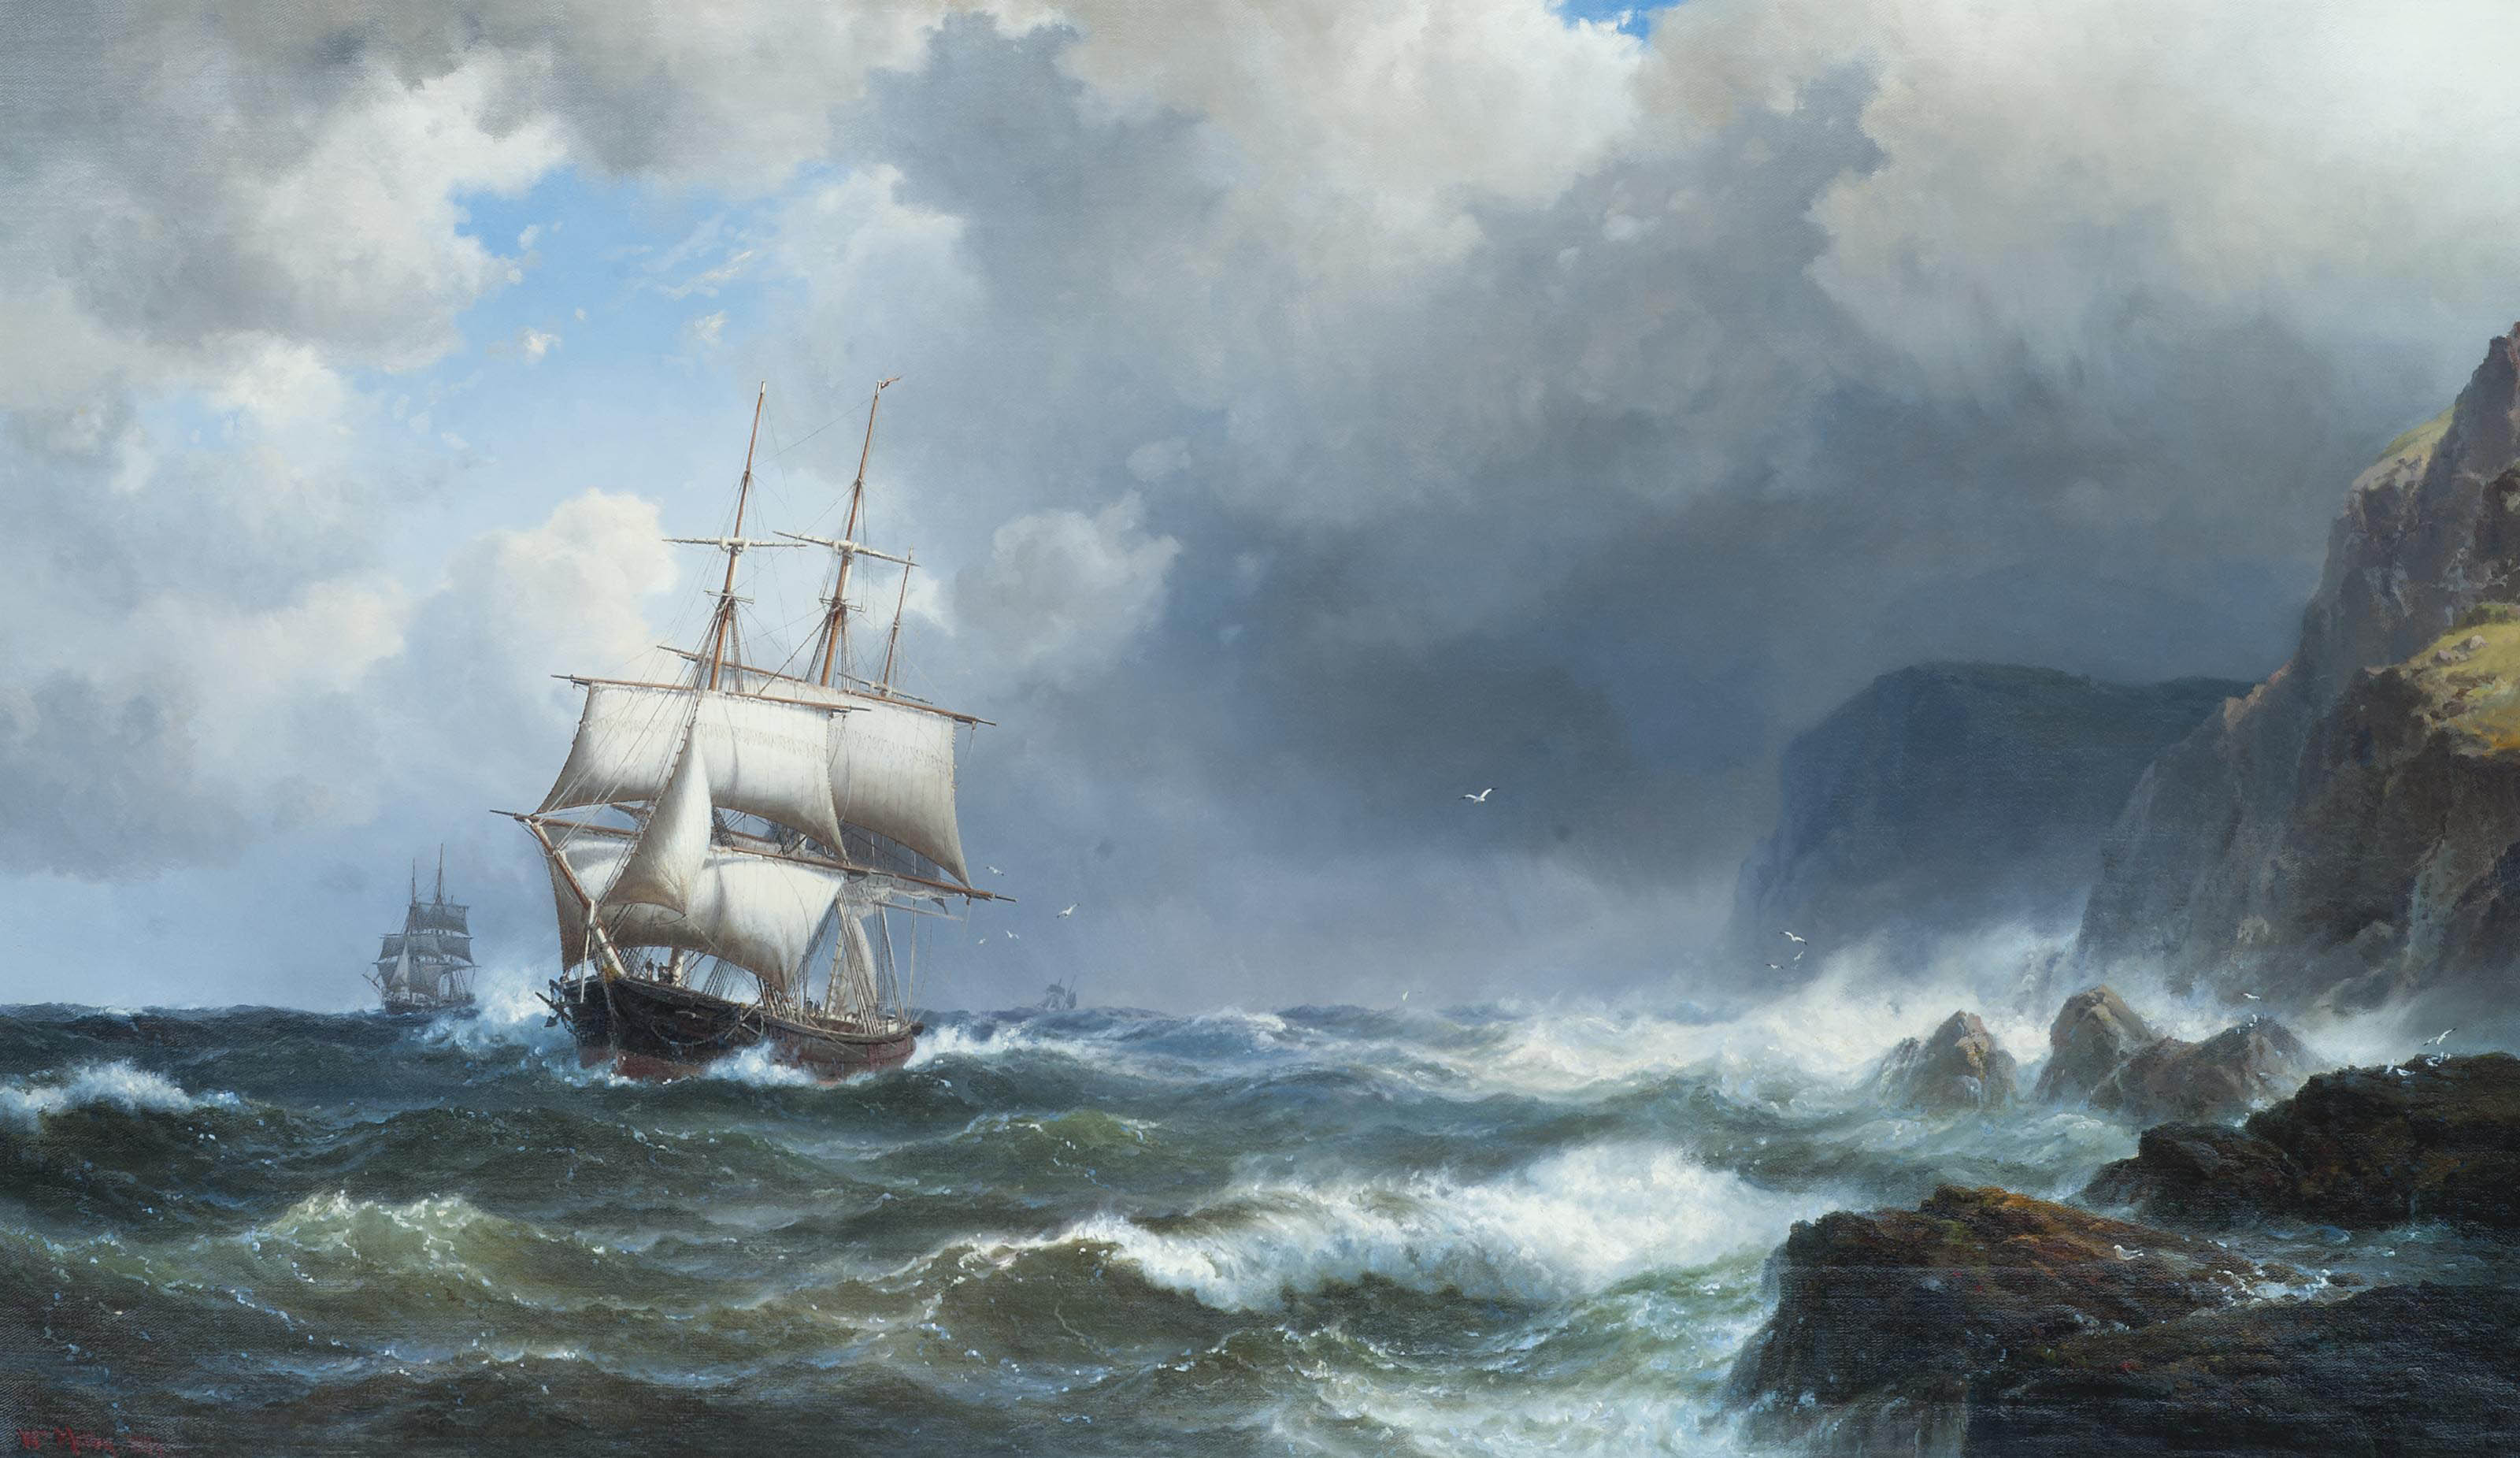 Rough weather off Land's End, Cornwall